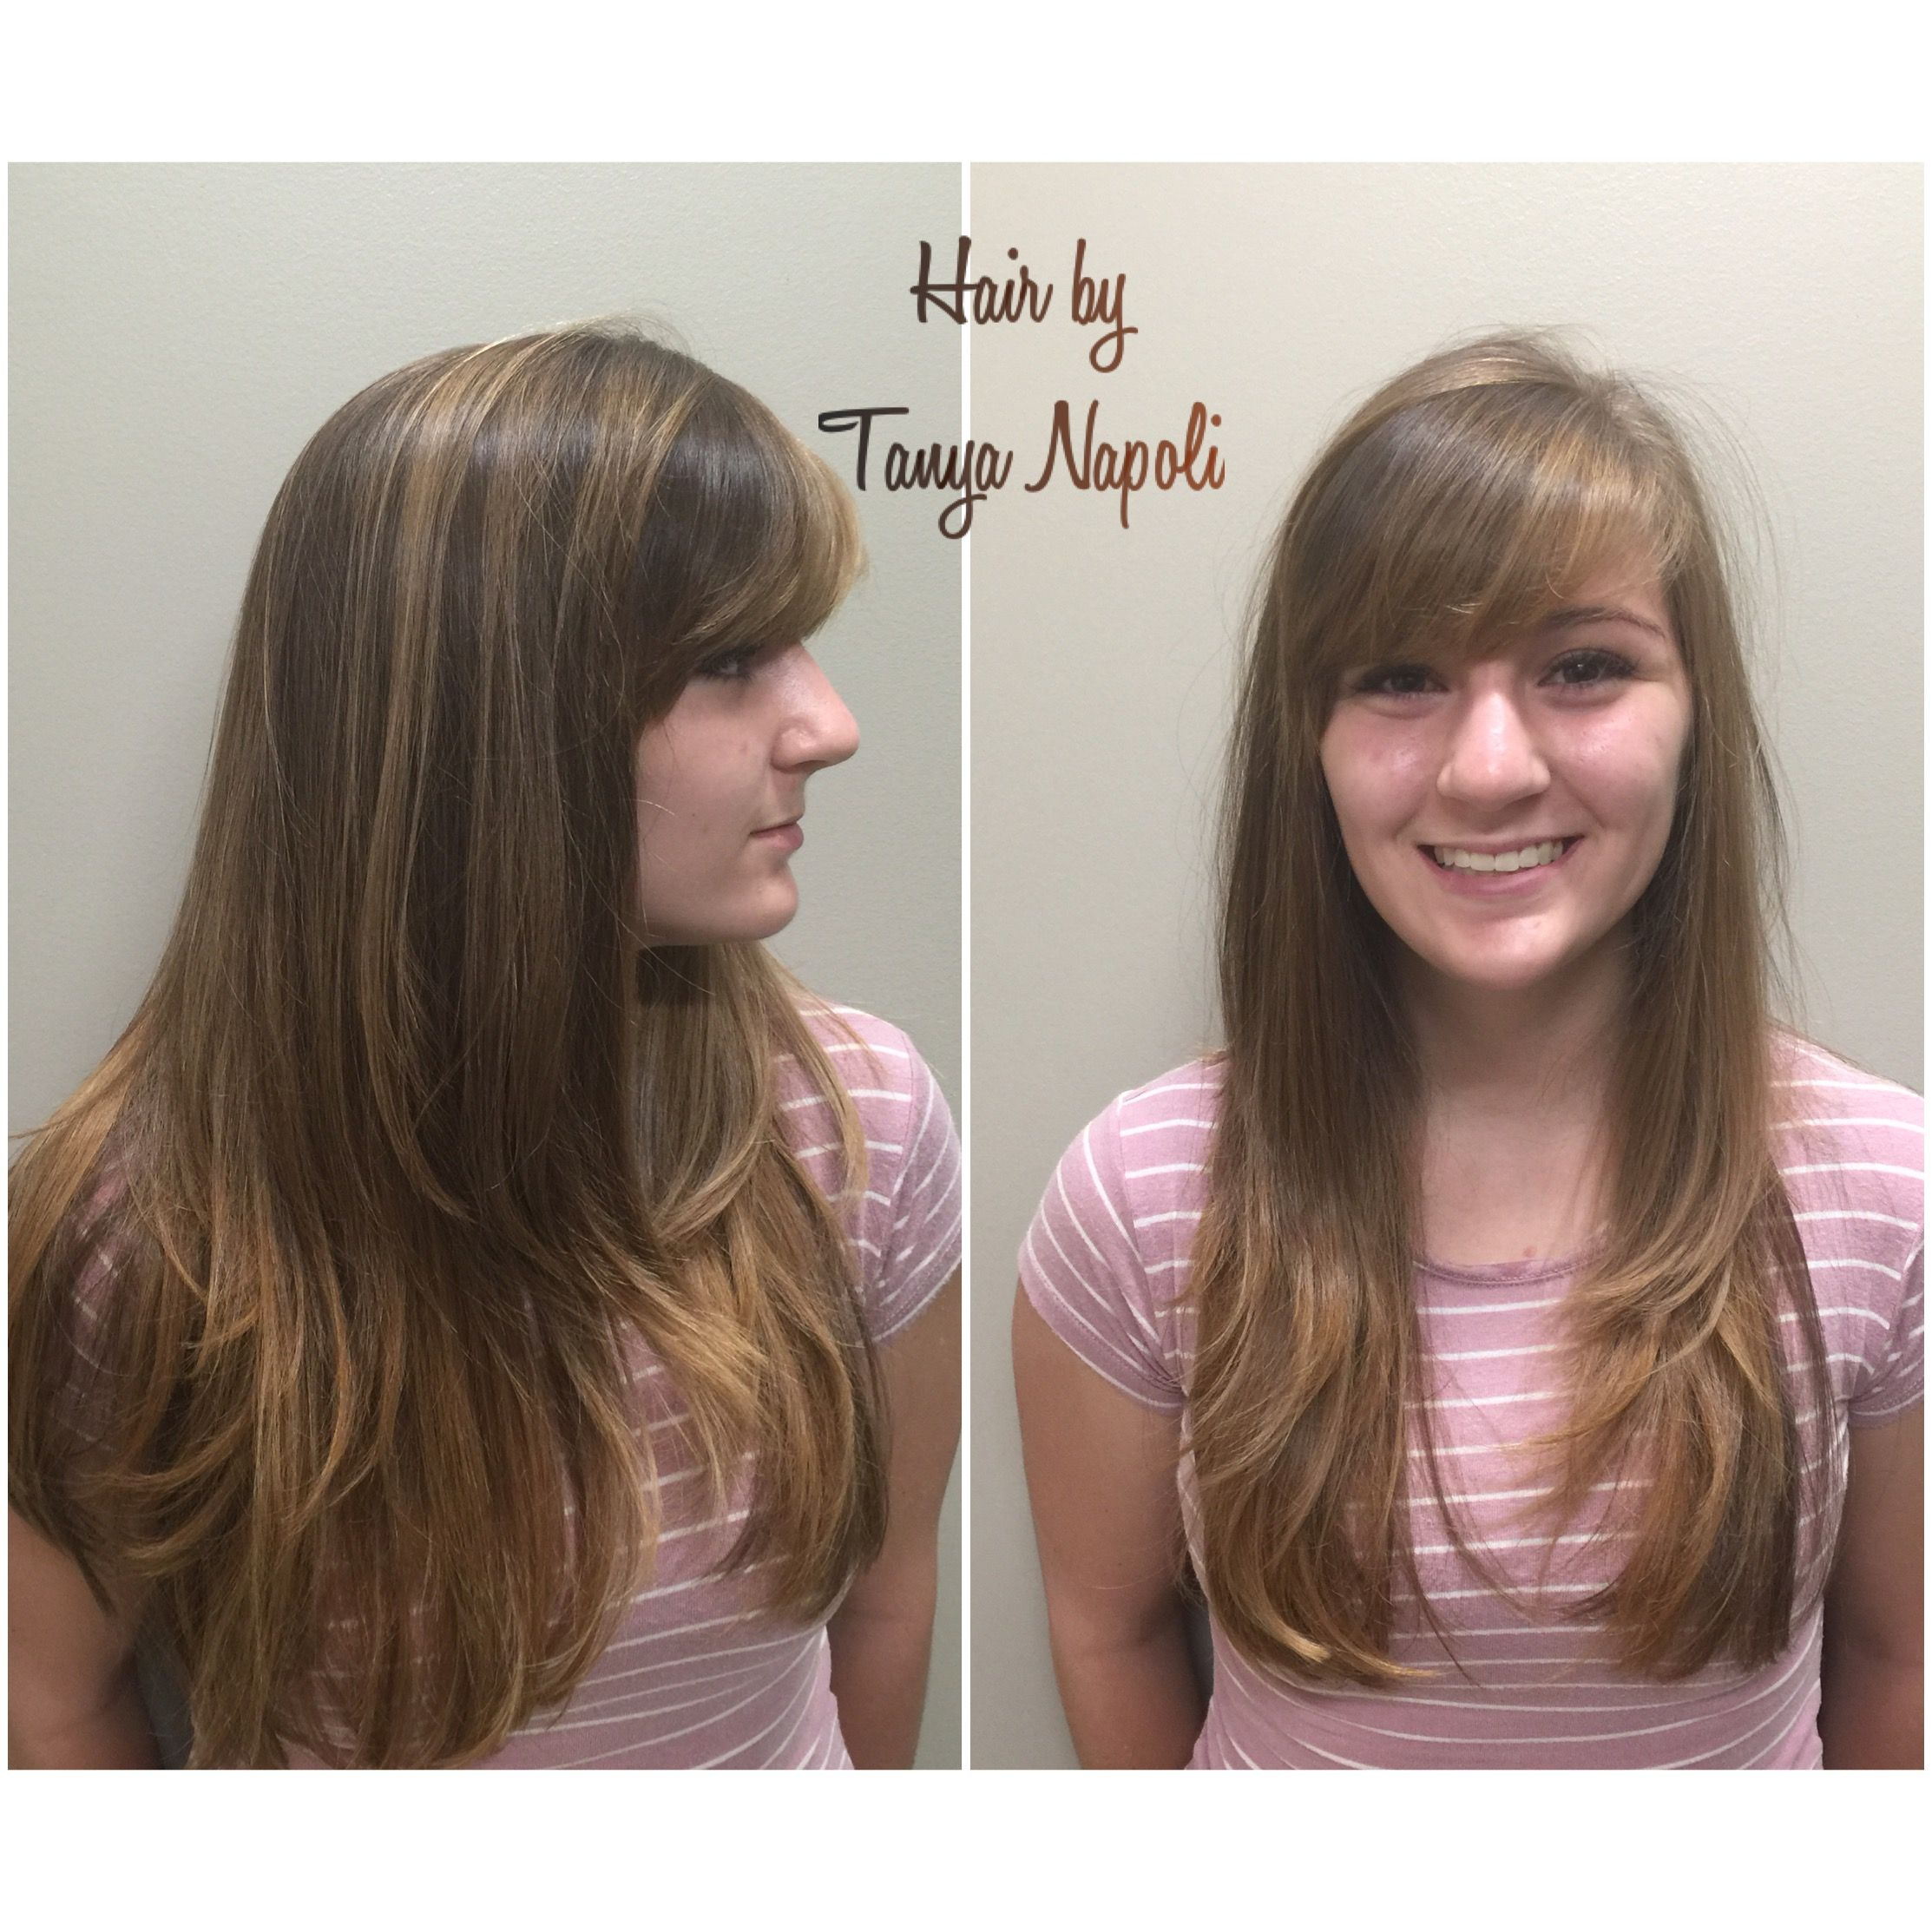 Sombre Virginia head of hair !!! So pretty hair done by Tanya Napoli